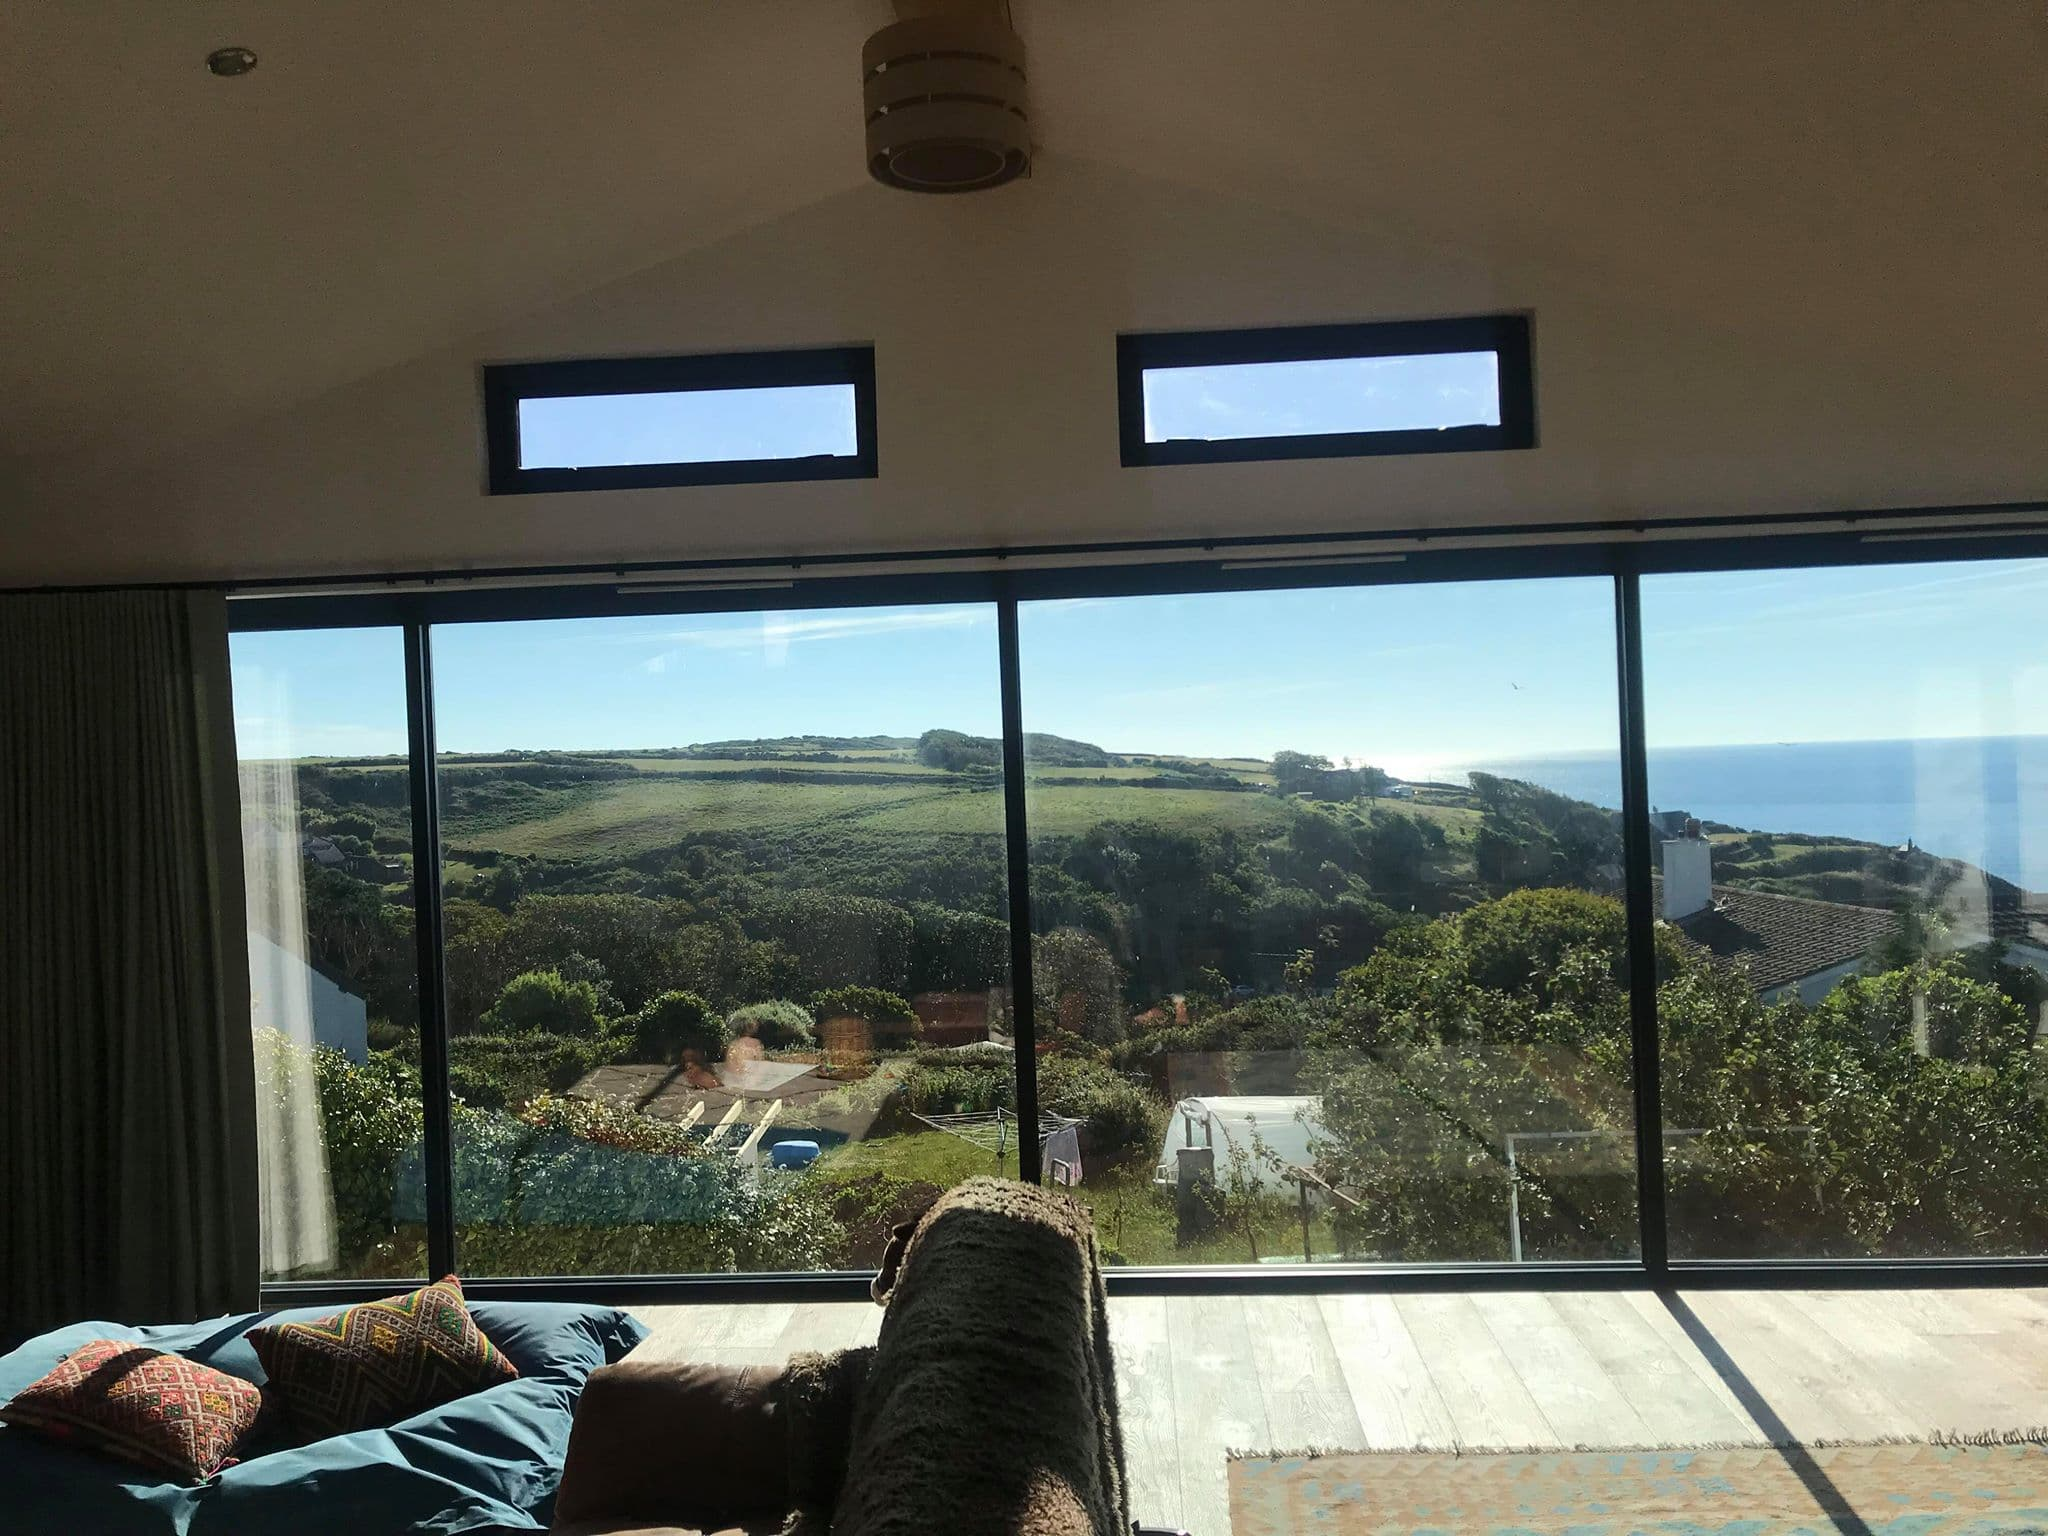 View from a home over the seaside in cornwall